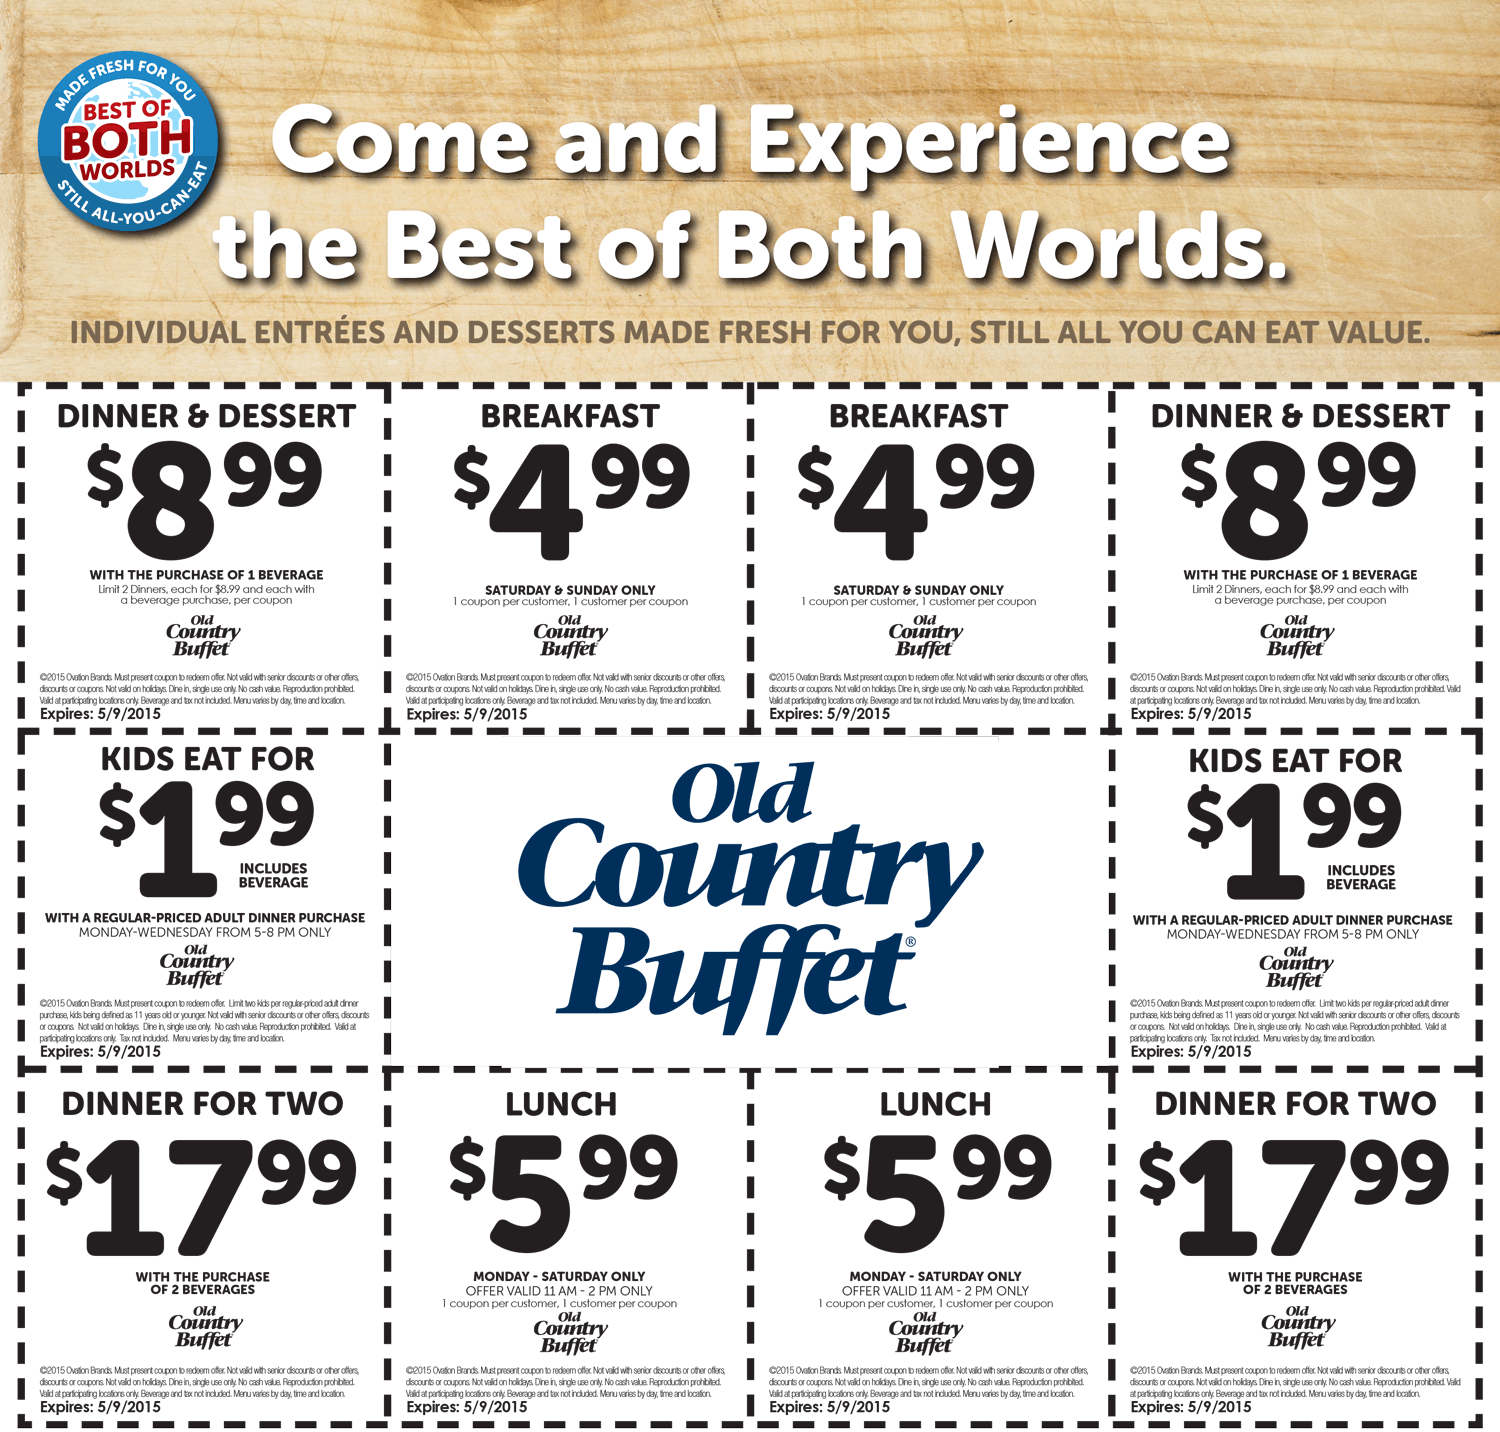 photo about Hometown Buffet Coupons Printable named Previous Nation Buffet Coupon codes - $2 small children, $5 breakfast, $6 lunch